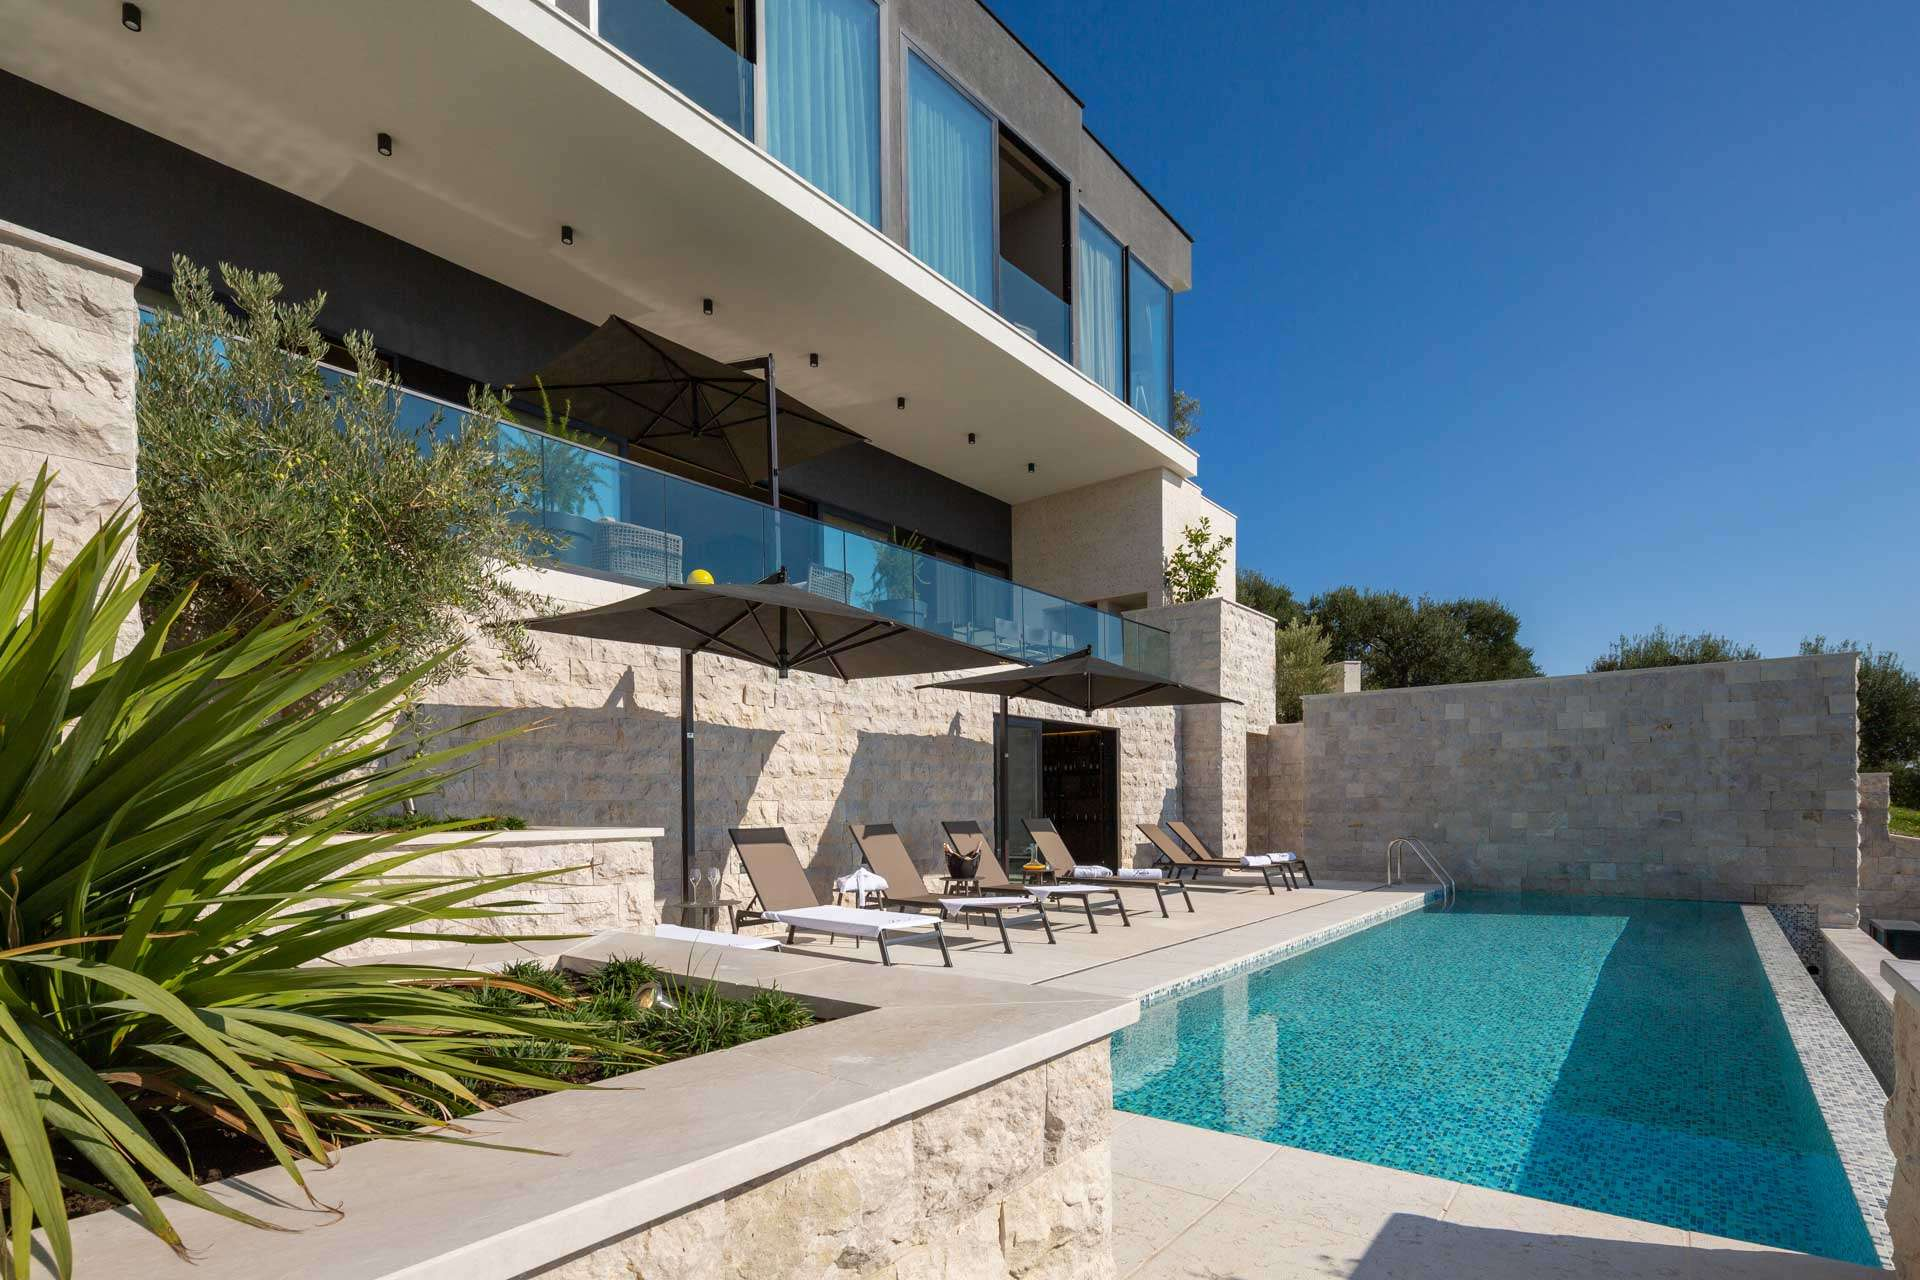 Luxury vacation rentals europe - Croatia - Dalmatia - Orasac - Frida's Place - Image 1/39